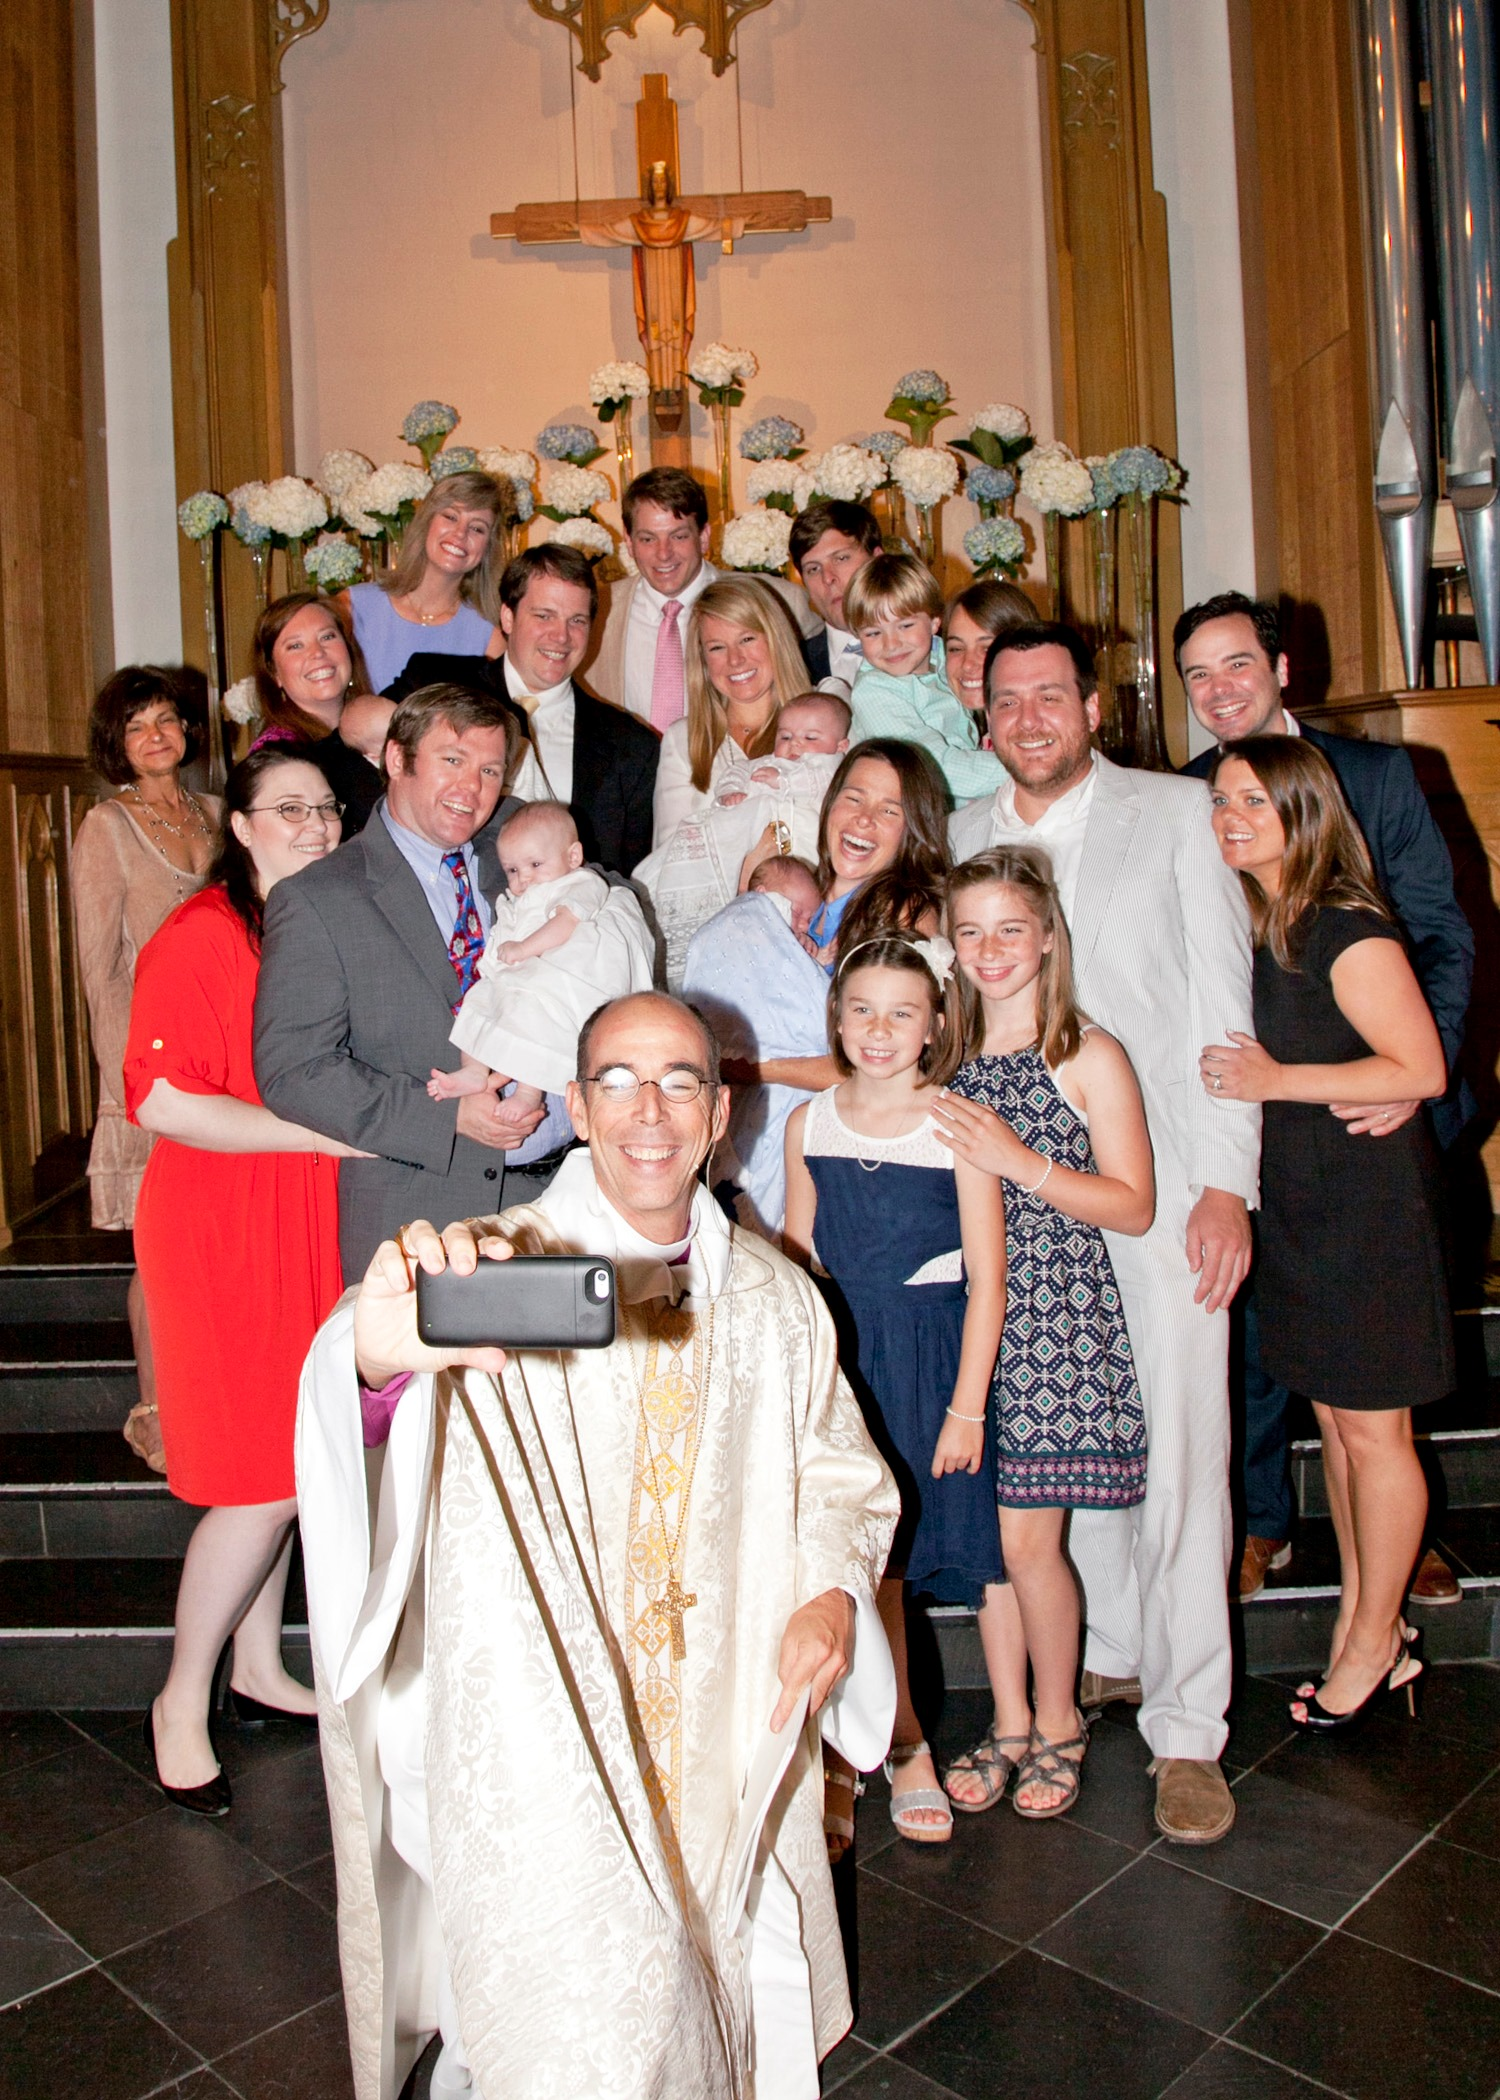 baptisms-with-bishop-seage.jpg